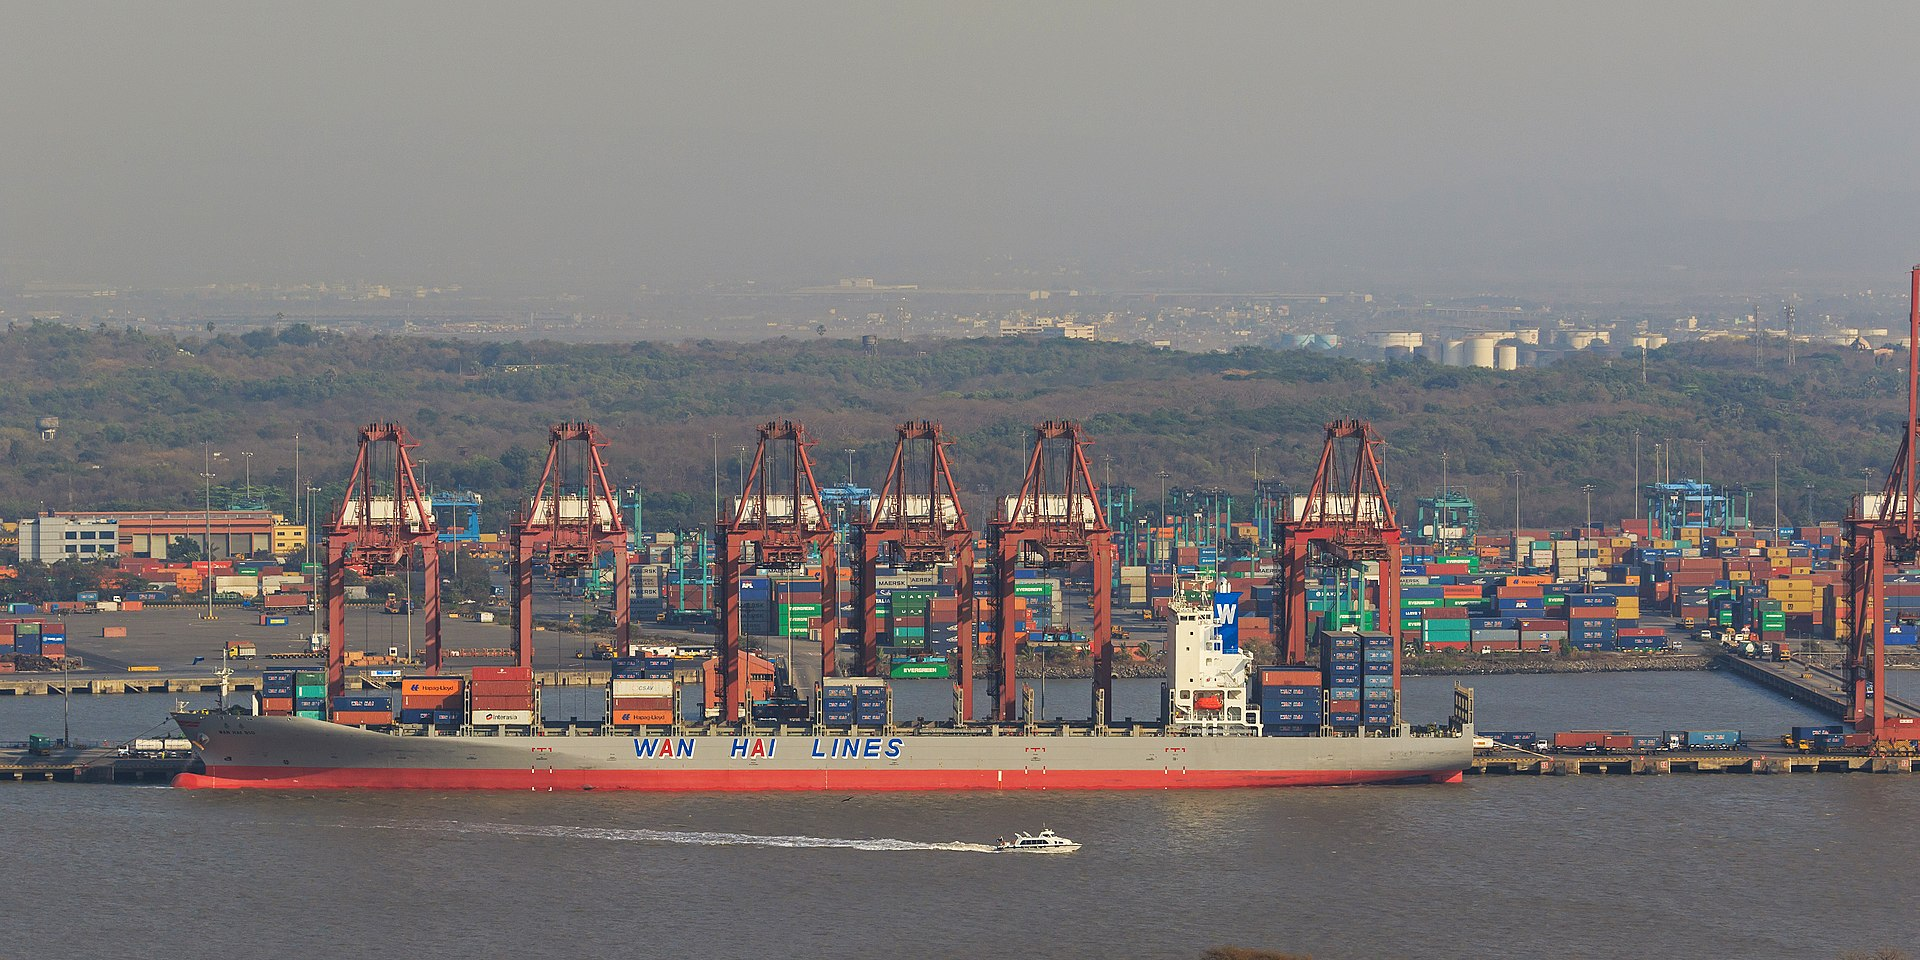 jawaharlal nehru port trust jnpt is New delhi: operations at one of three terminals at india's largest container port, jawaharlal nehru port trust (jnpt) run by ap moller-maersk, near mumbai, were disrupted by a global ransomware.